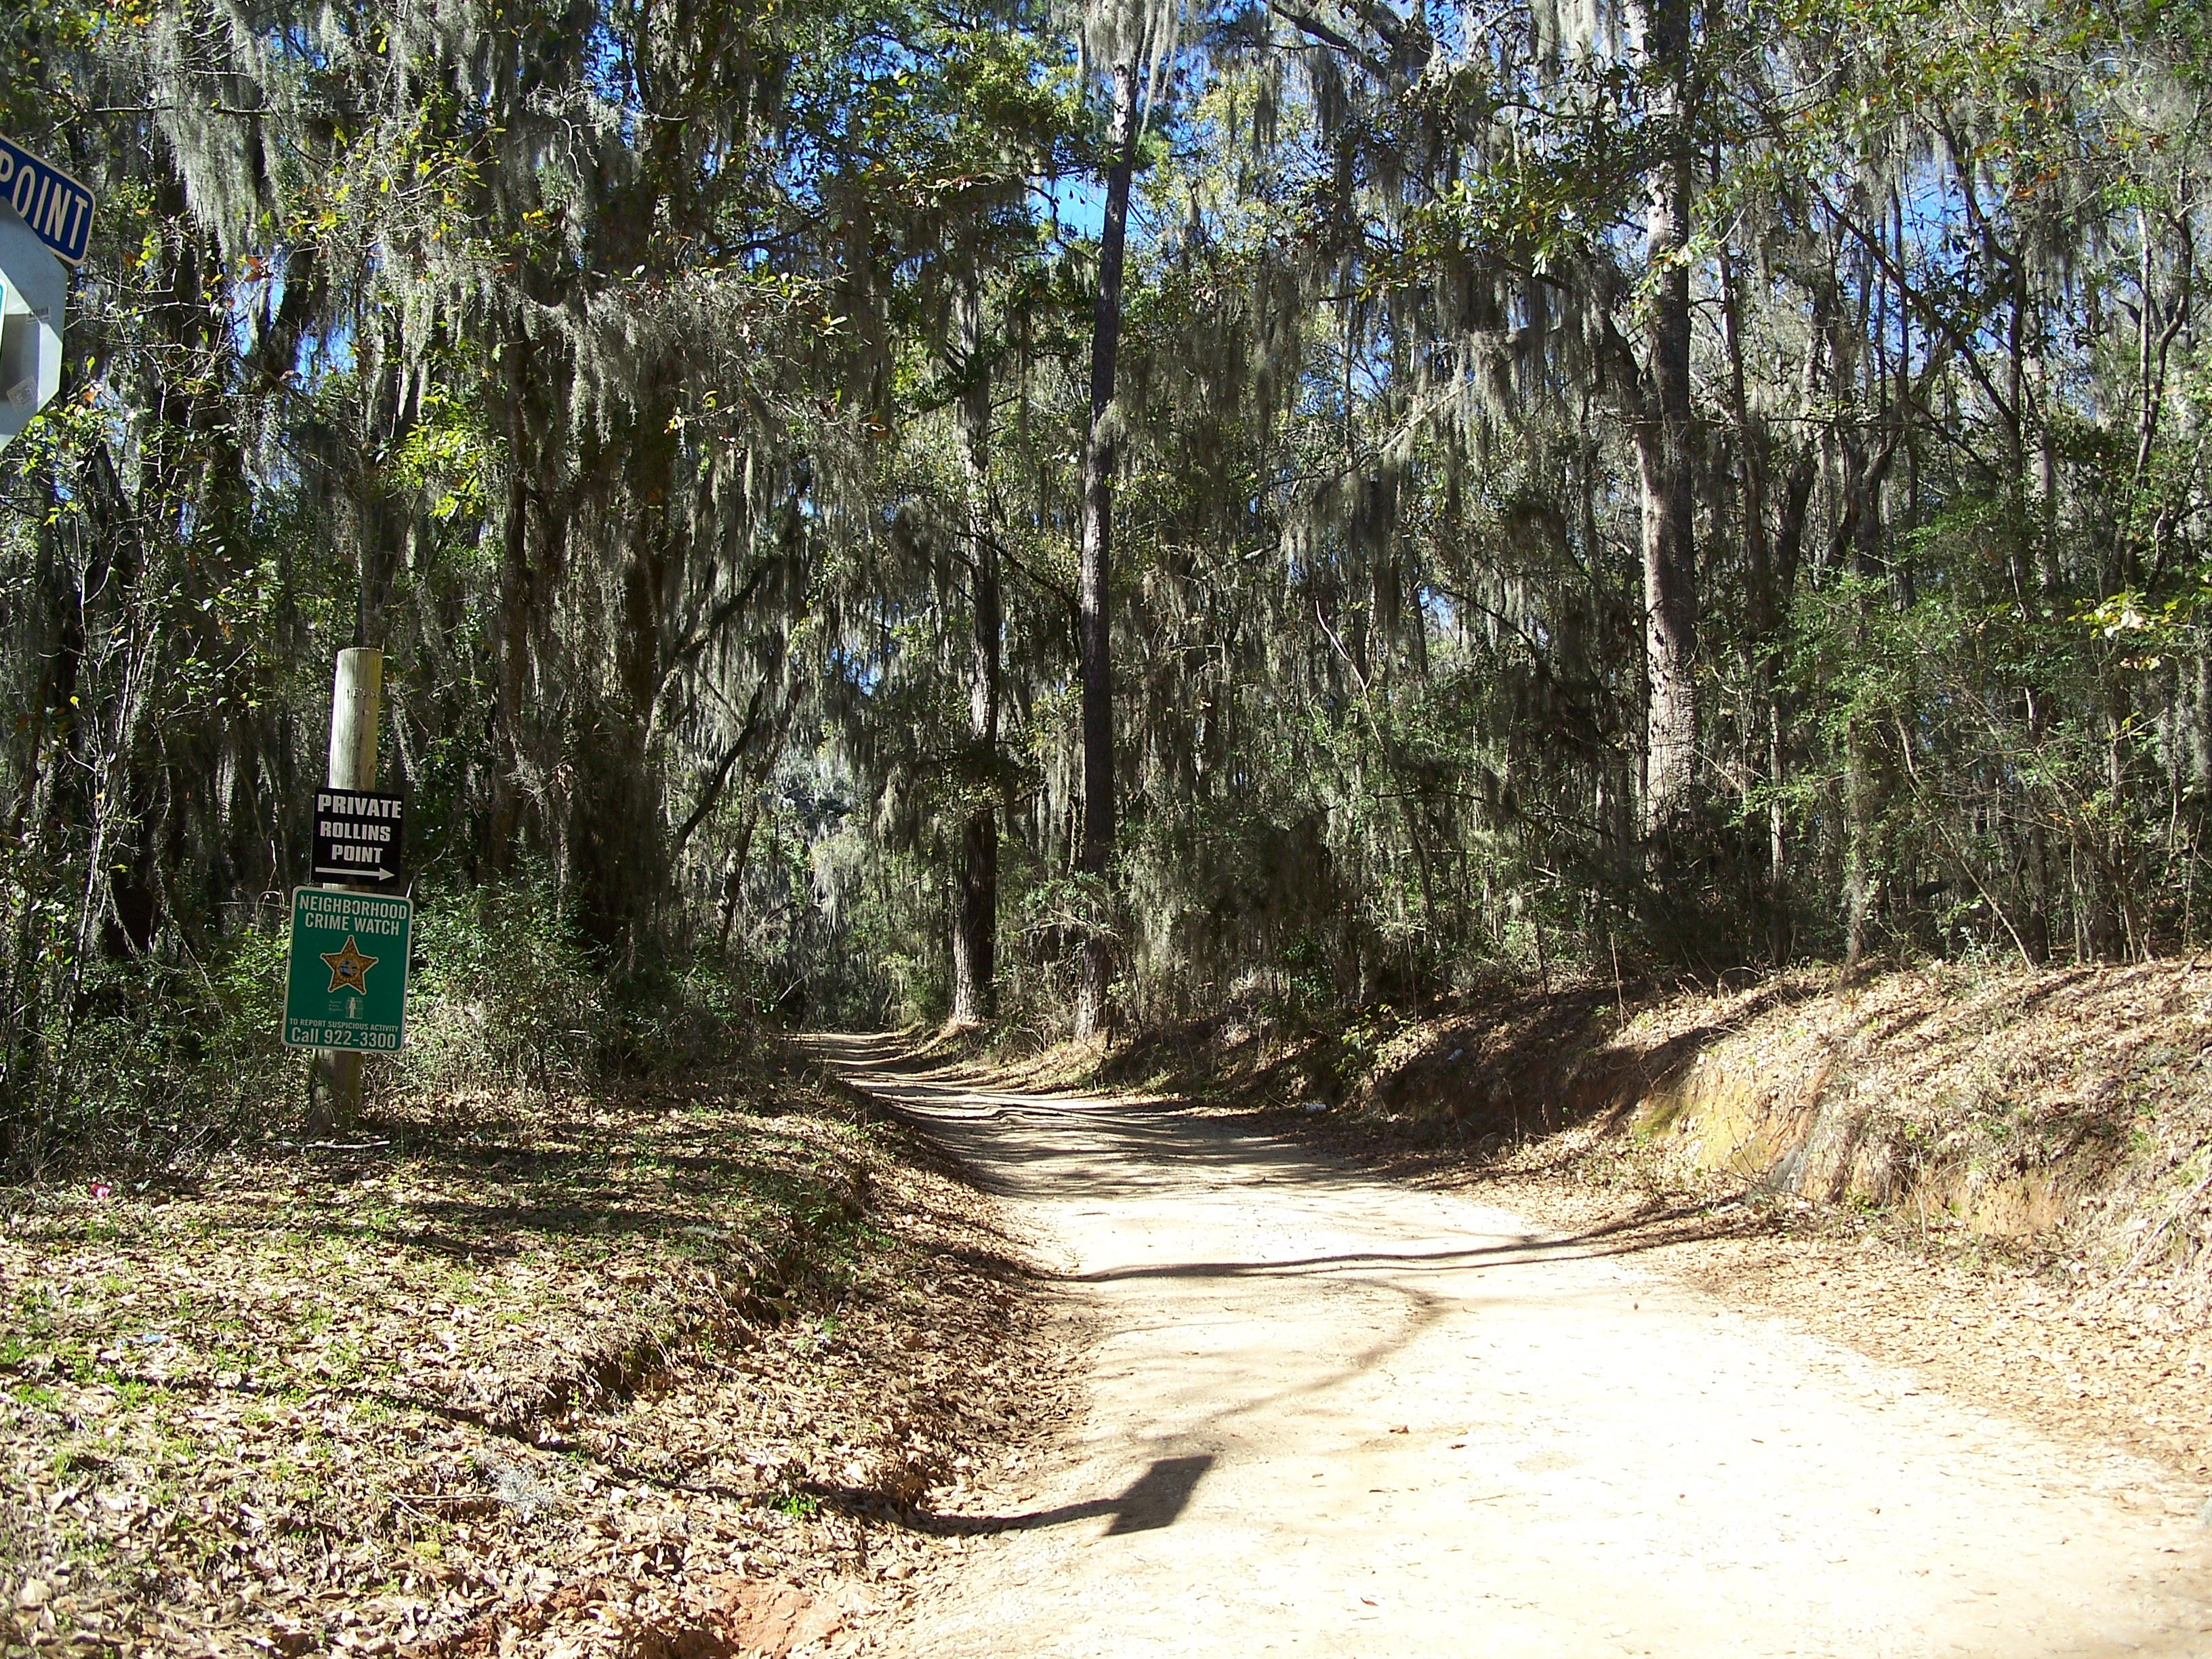 File:Tallahassee FL Rollins House road01.jpg